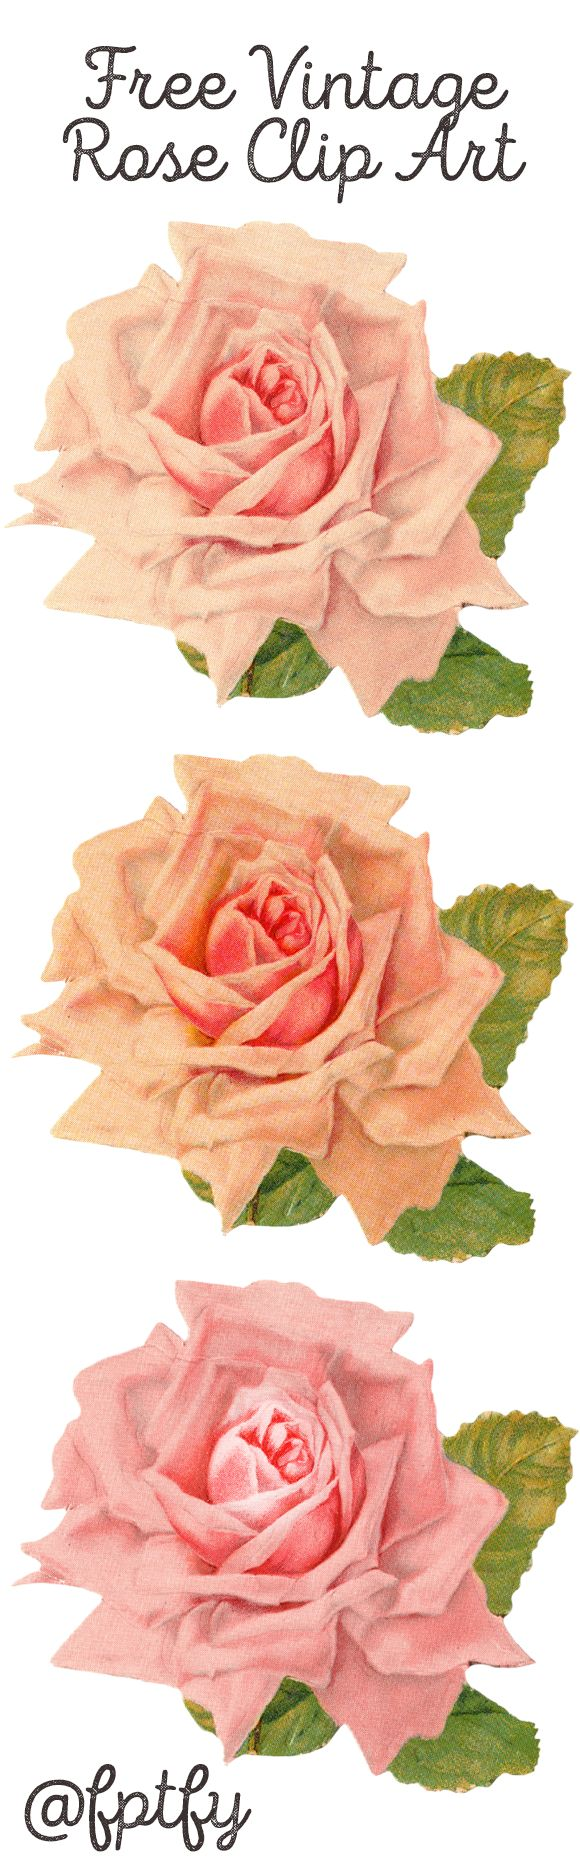 1000+ ideas about Vintage Rose on Pinterest.